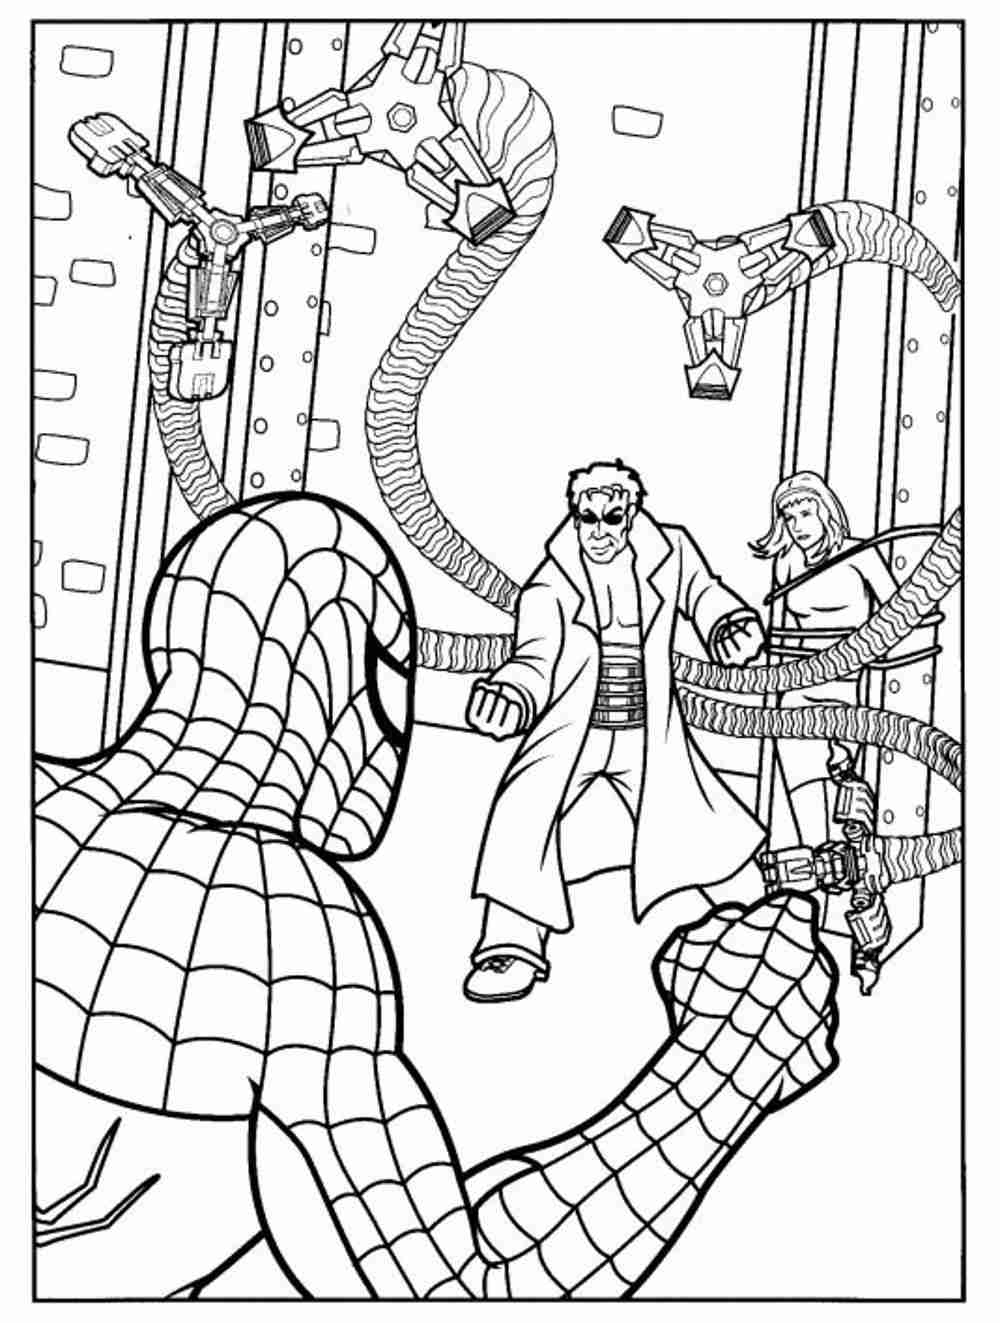 spiderman picture to color spiderman coloring pages 2 coloring pages to print picture to color spiderman